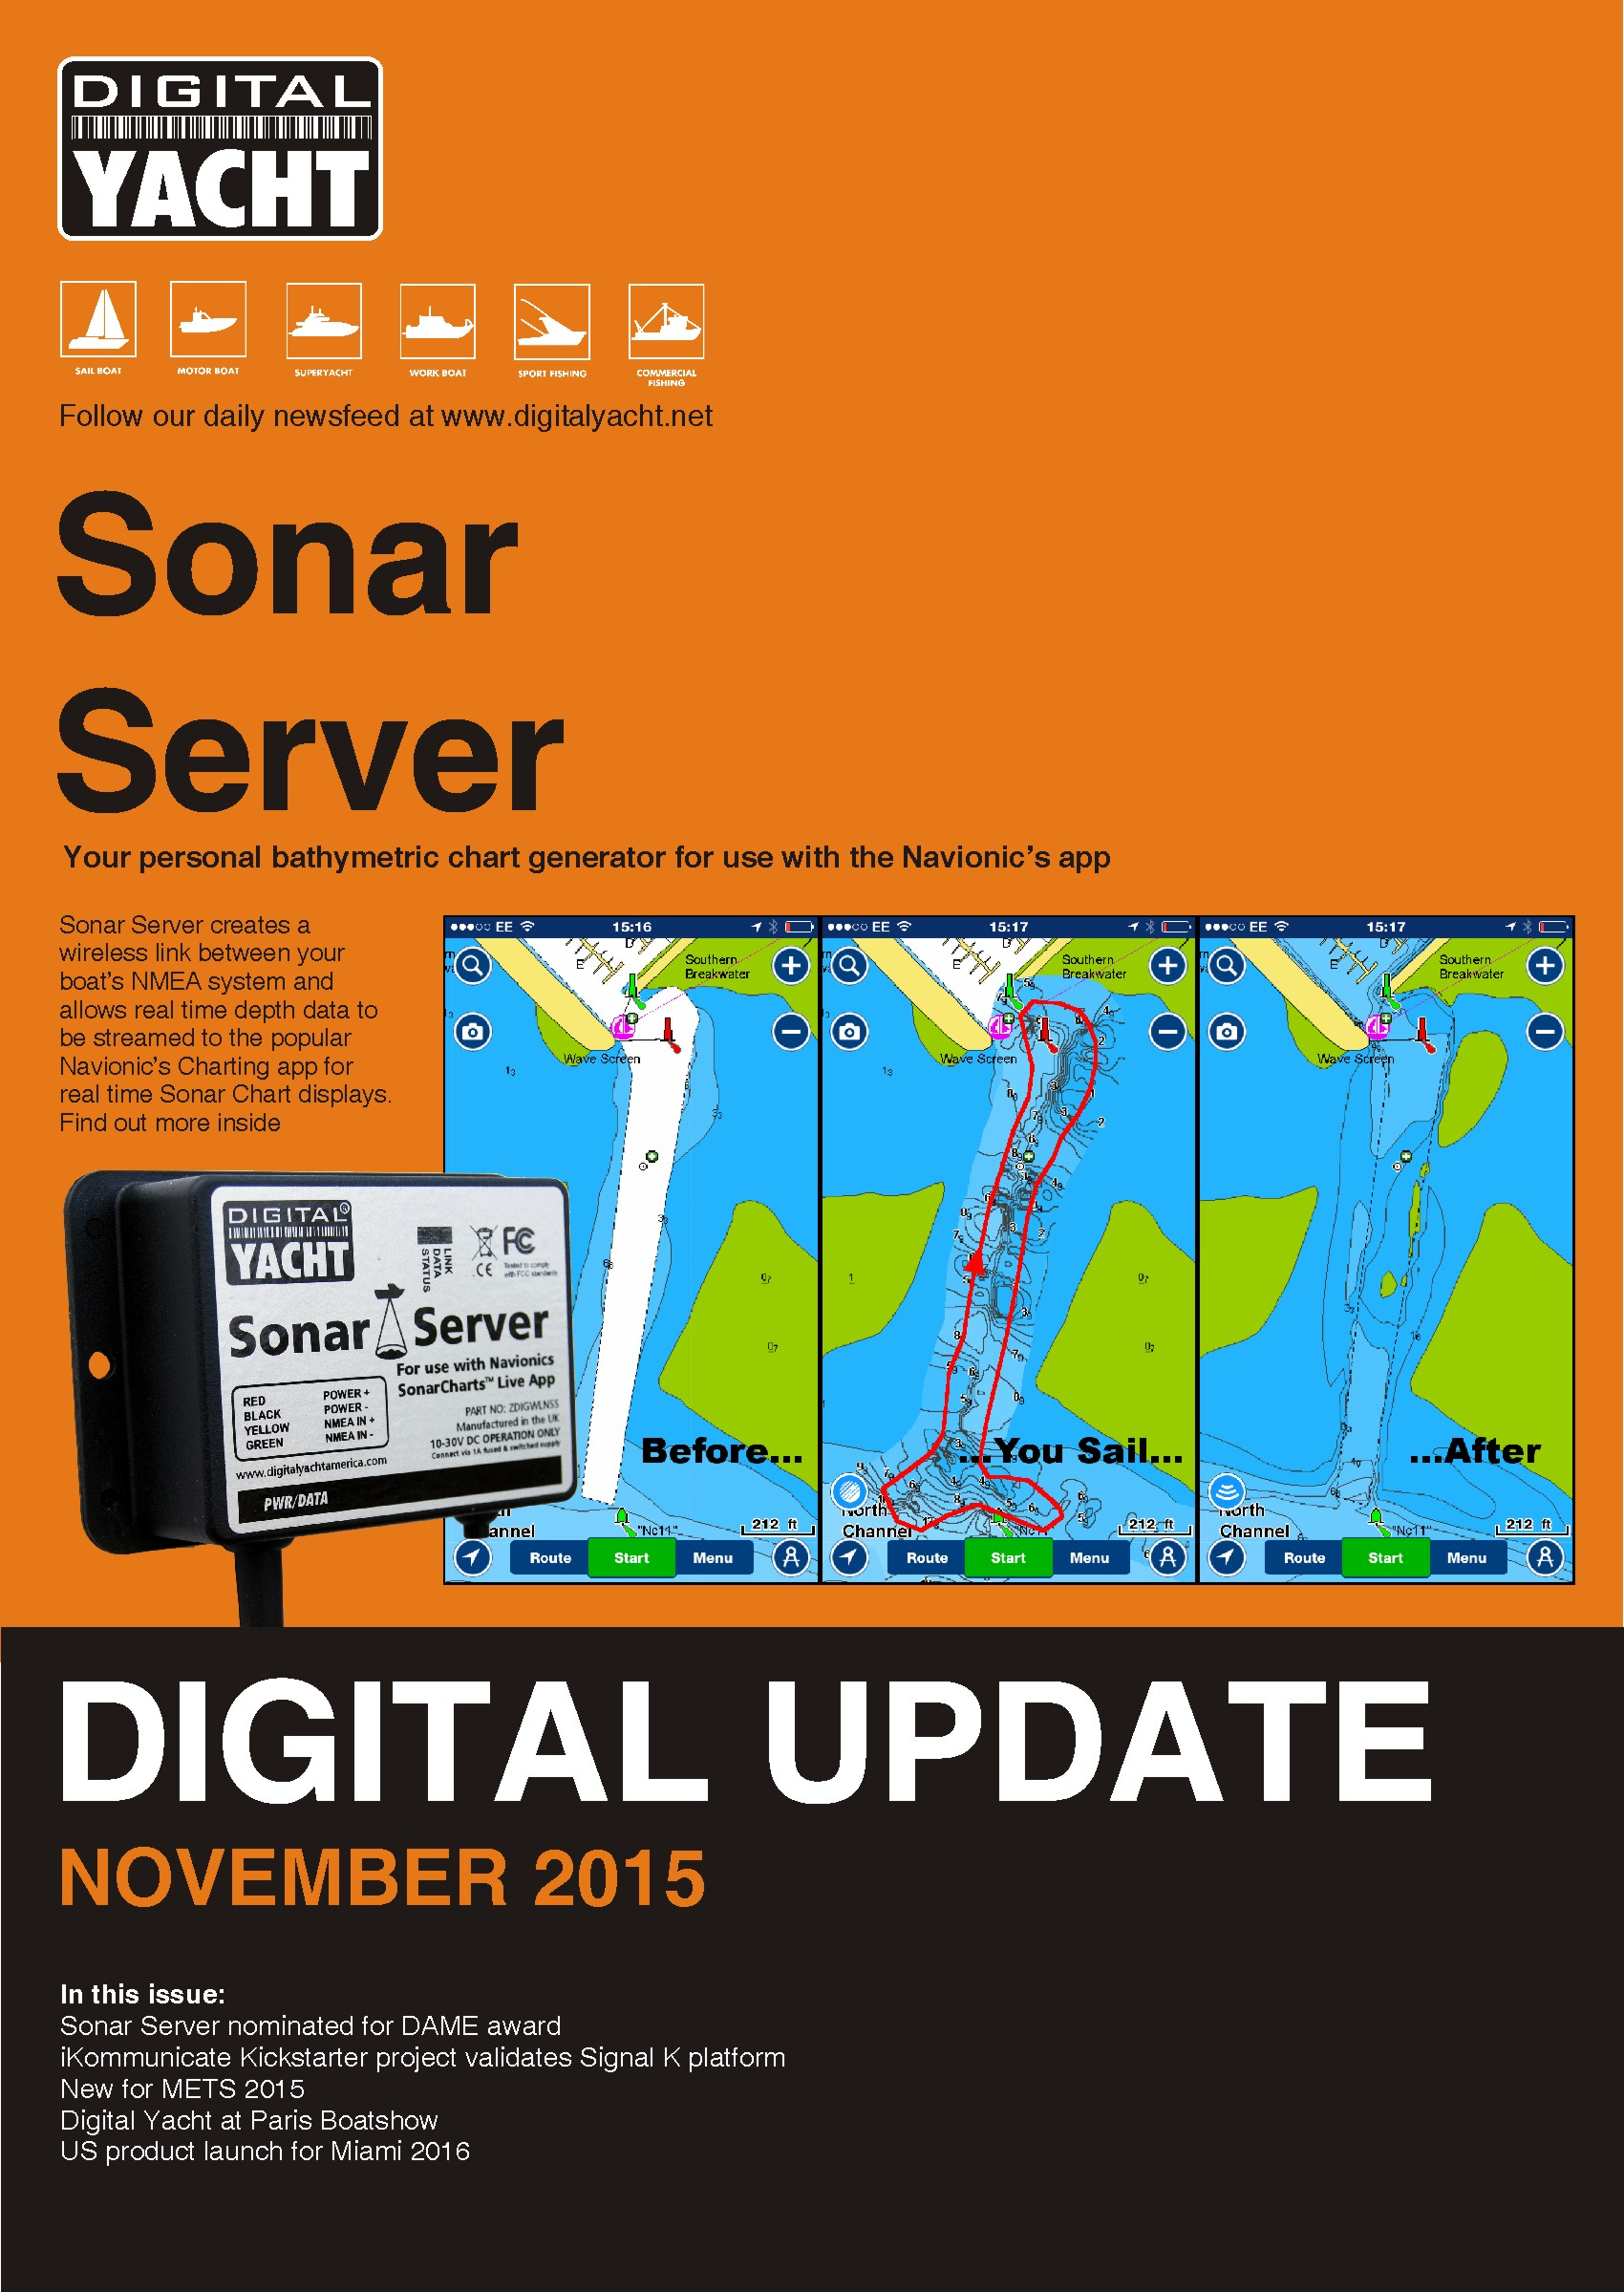 Sonar Subsea System Wiring Diagram Vehicle Diagrams Digital Update November 2015 Now Out At